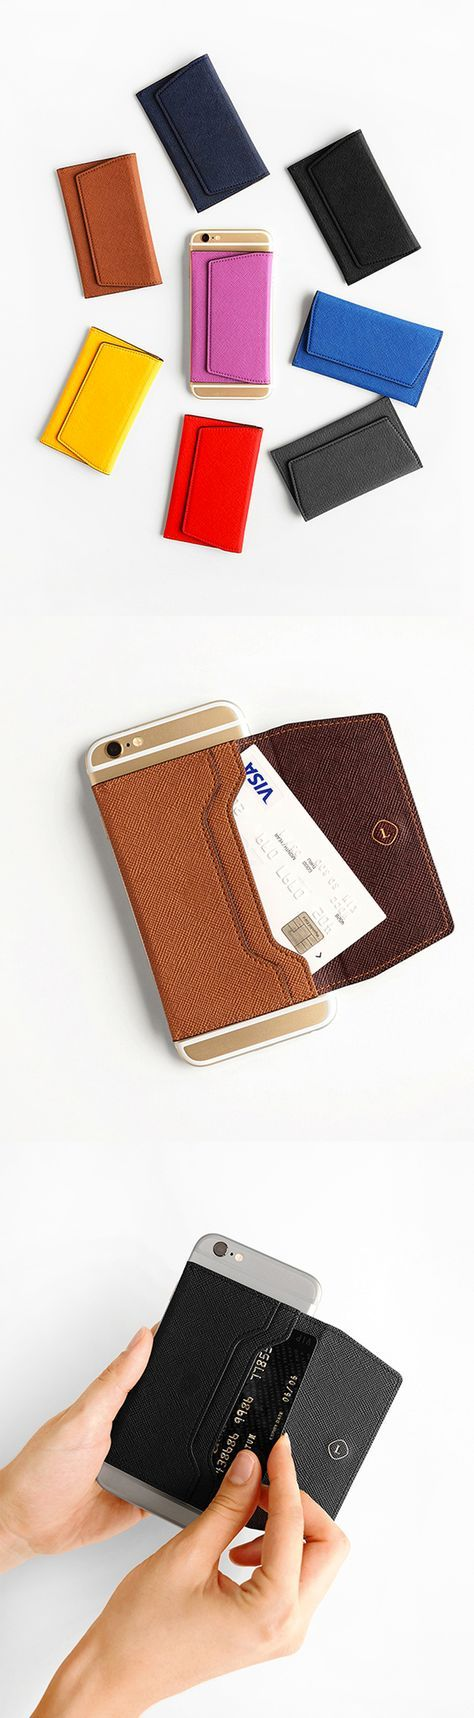 Keep your most used cards on hand with the Leather Sticky Card Case! This ingenious card case comes in 2 sizes and sticks onto the back of your phone or case. It'll come off without leaving any residue and doubles as a phone stand, too! Easily store your ID, credit card, or bus pass when you're on the go with this smart card organizer. Check it out!